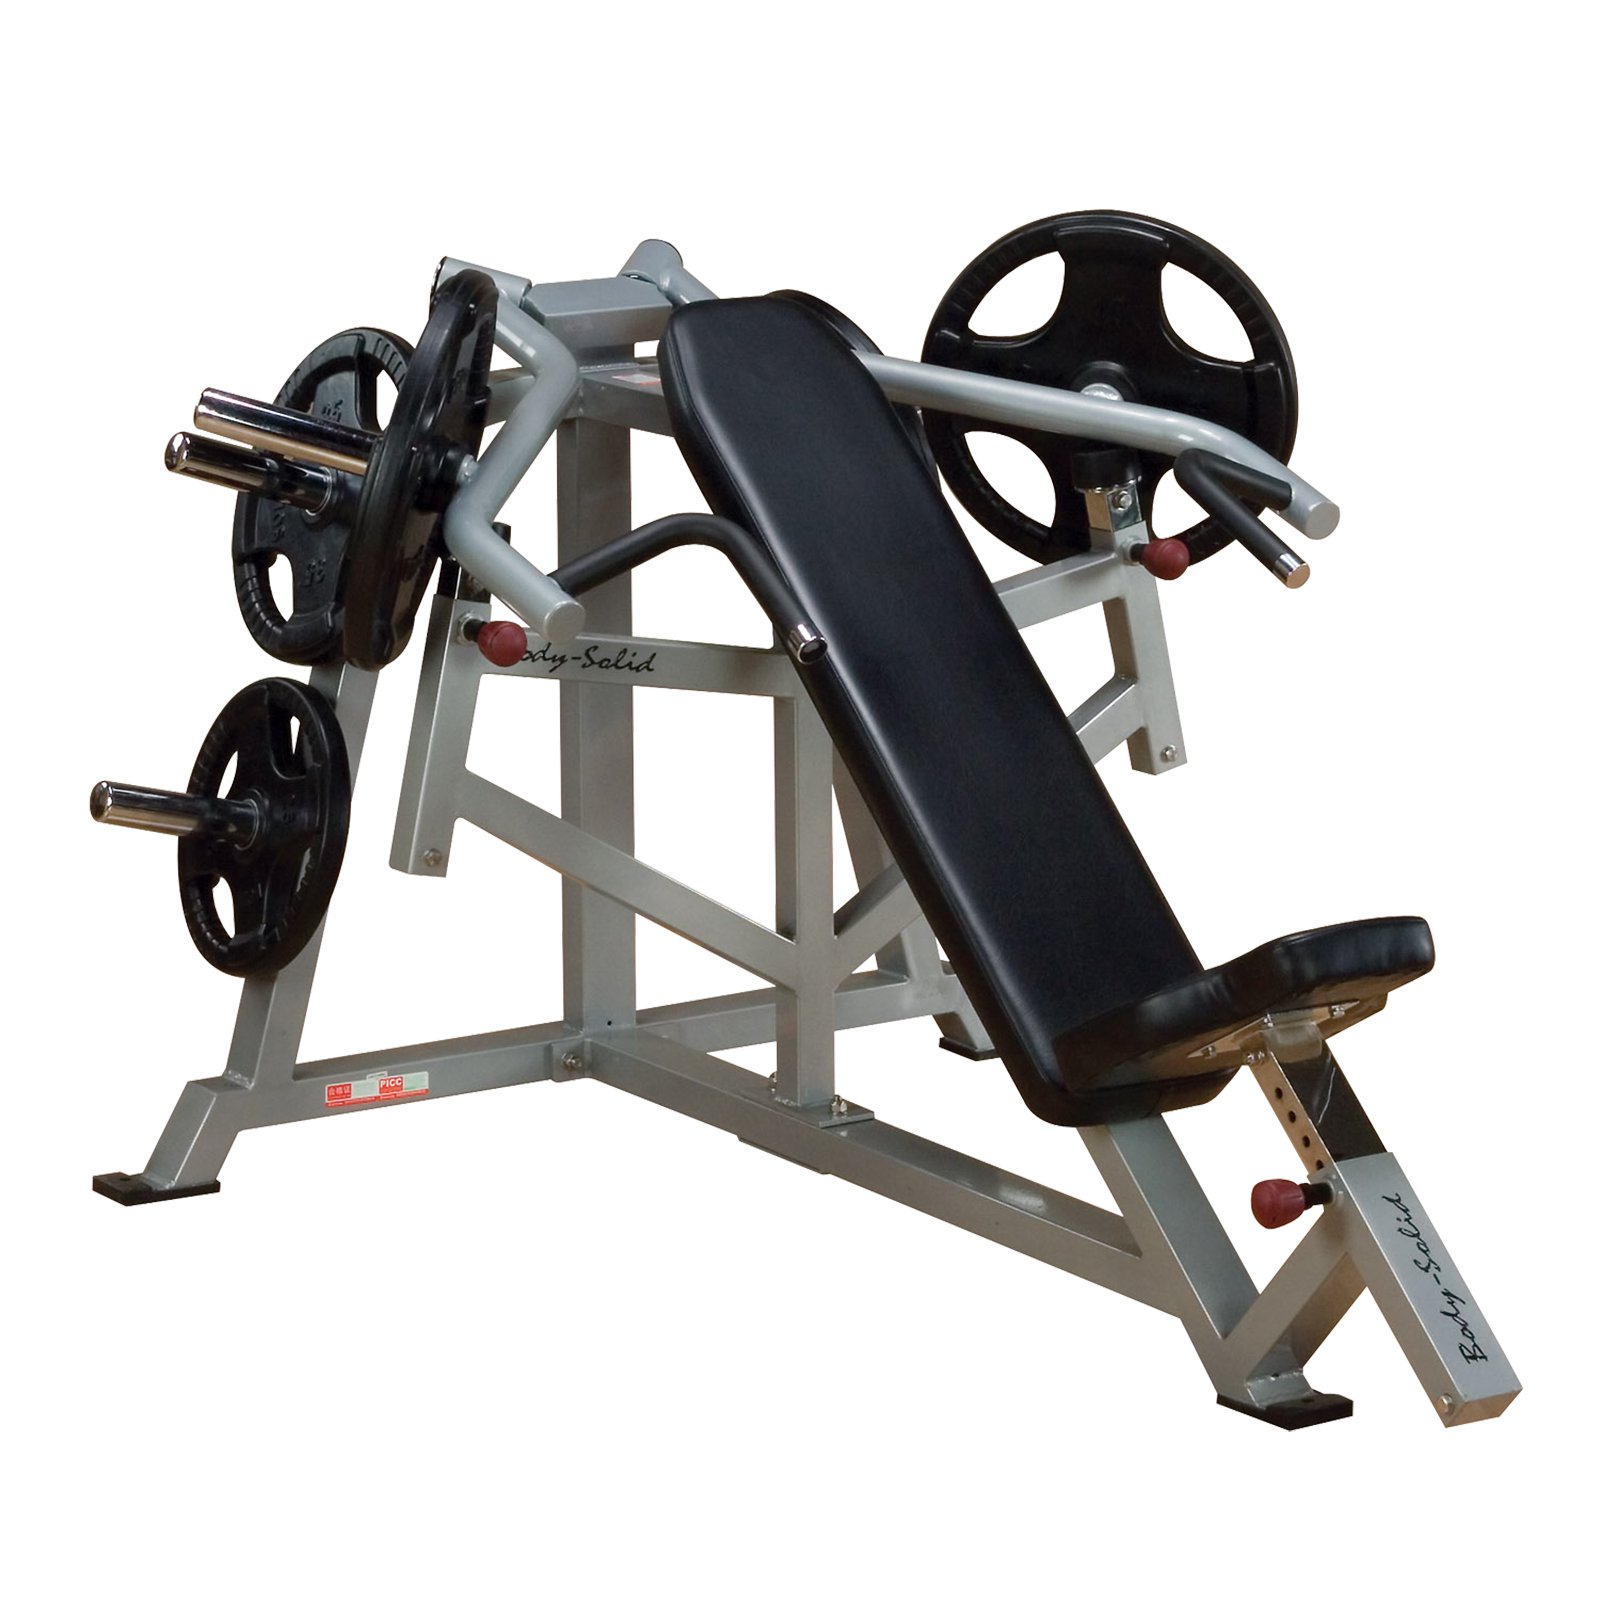 Body-Solid LVIP Leverage Incline Press